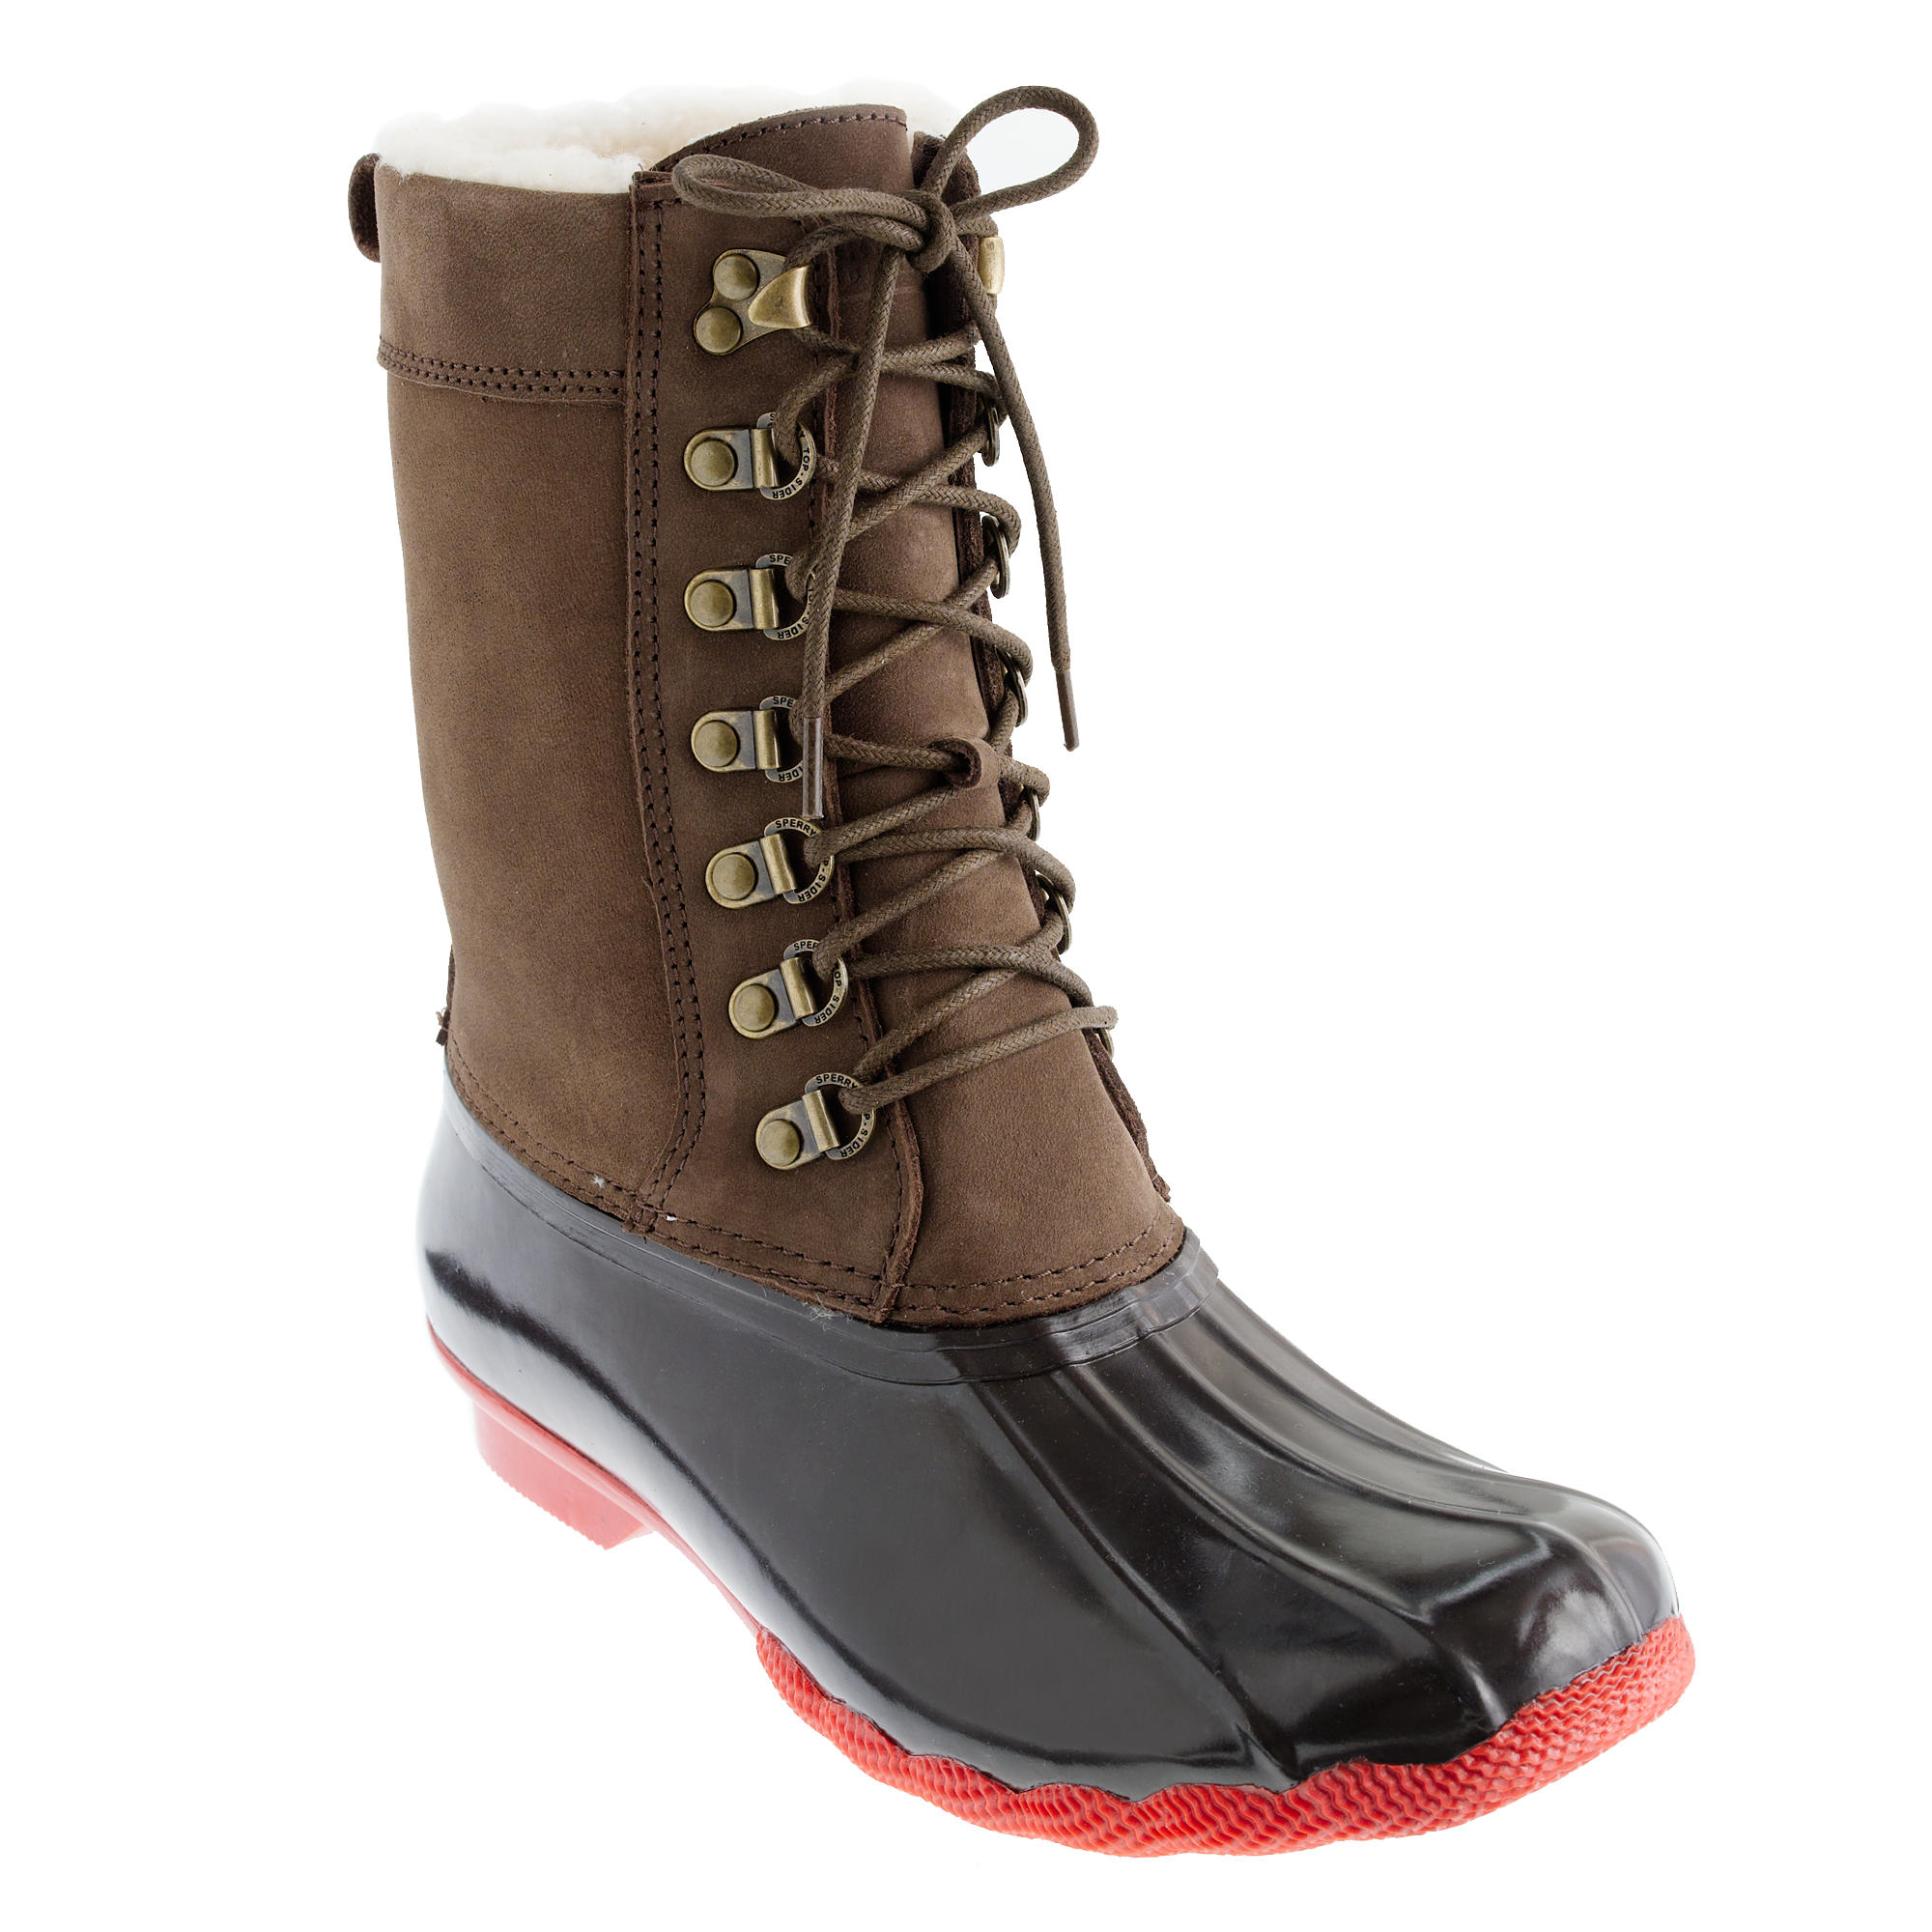 Popular Top 10 Ideas About Duck Boots On Pinterest | Lace Duck Boots And Timberlands Women